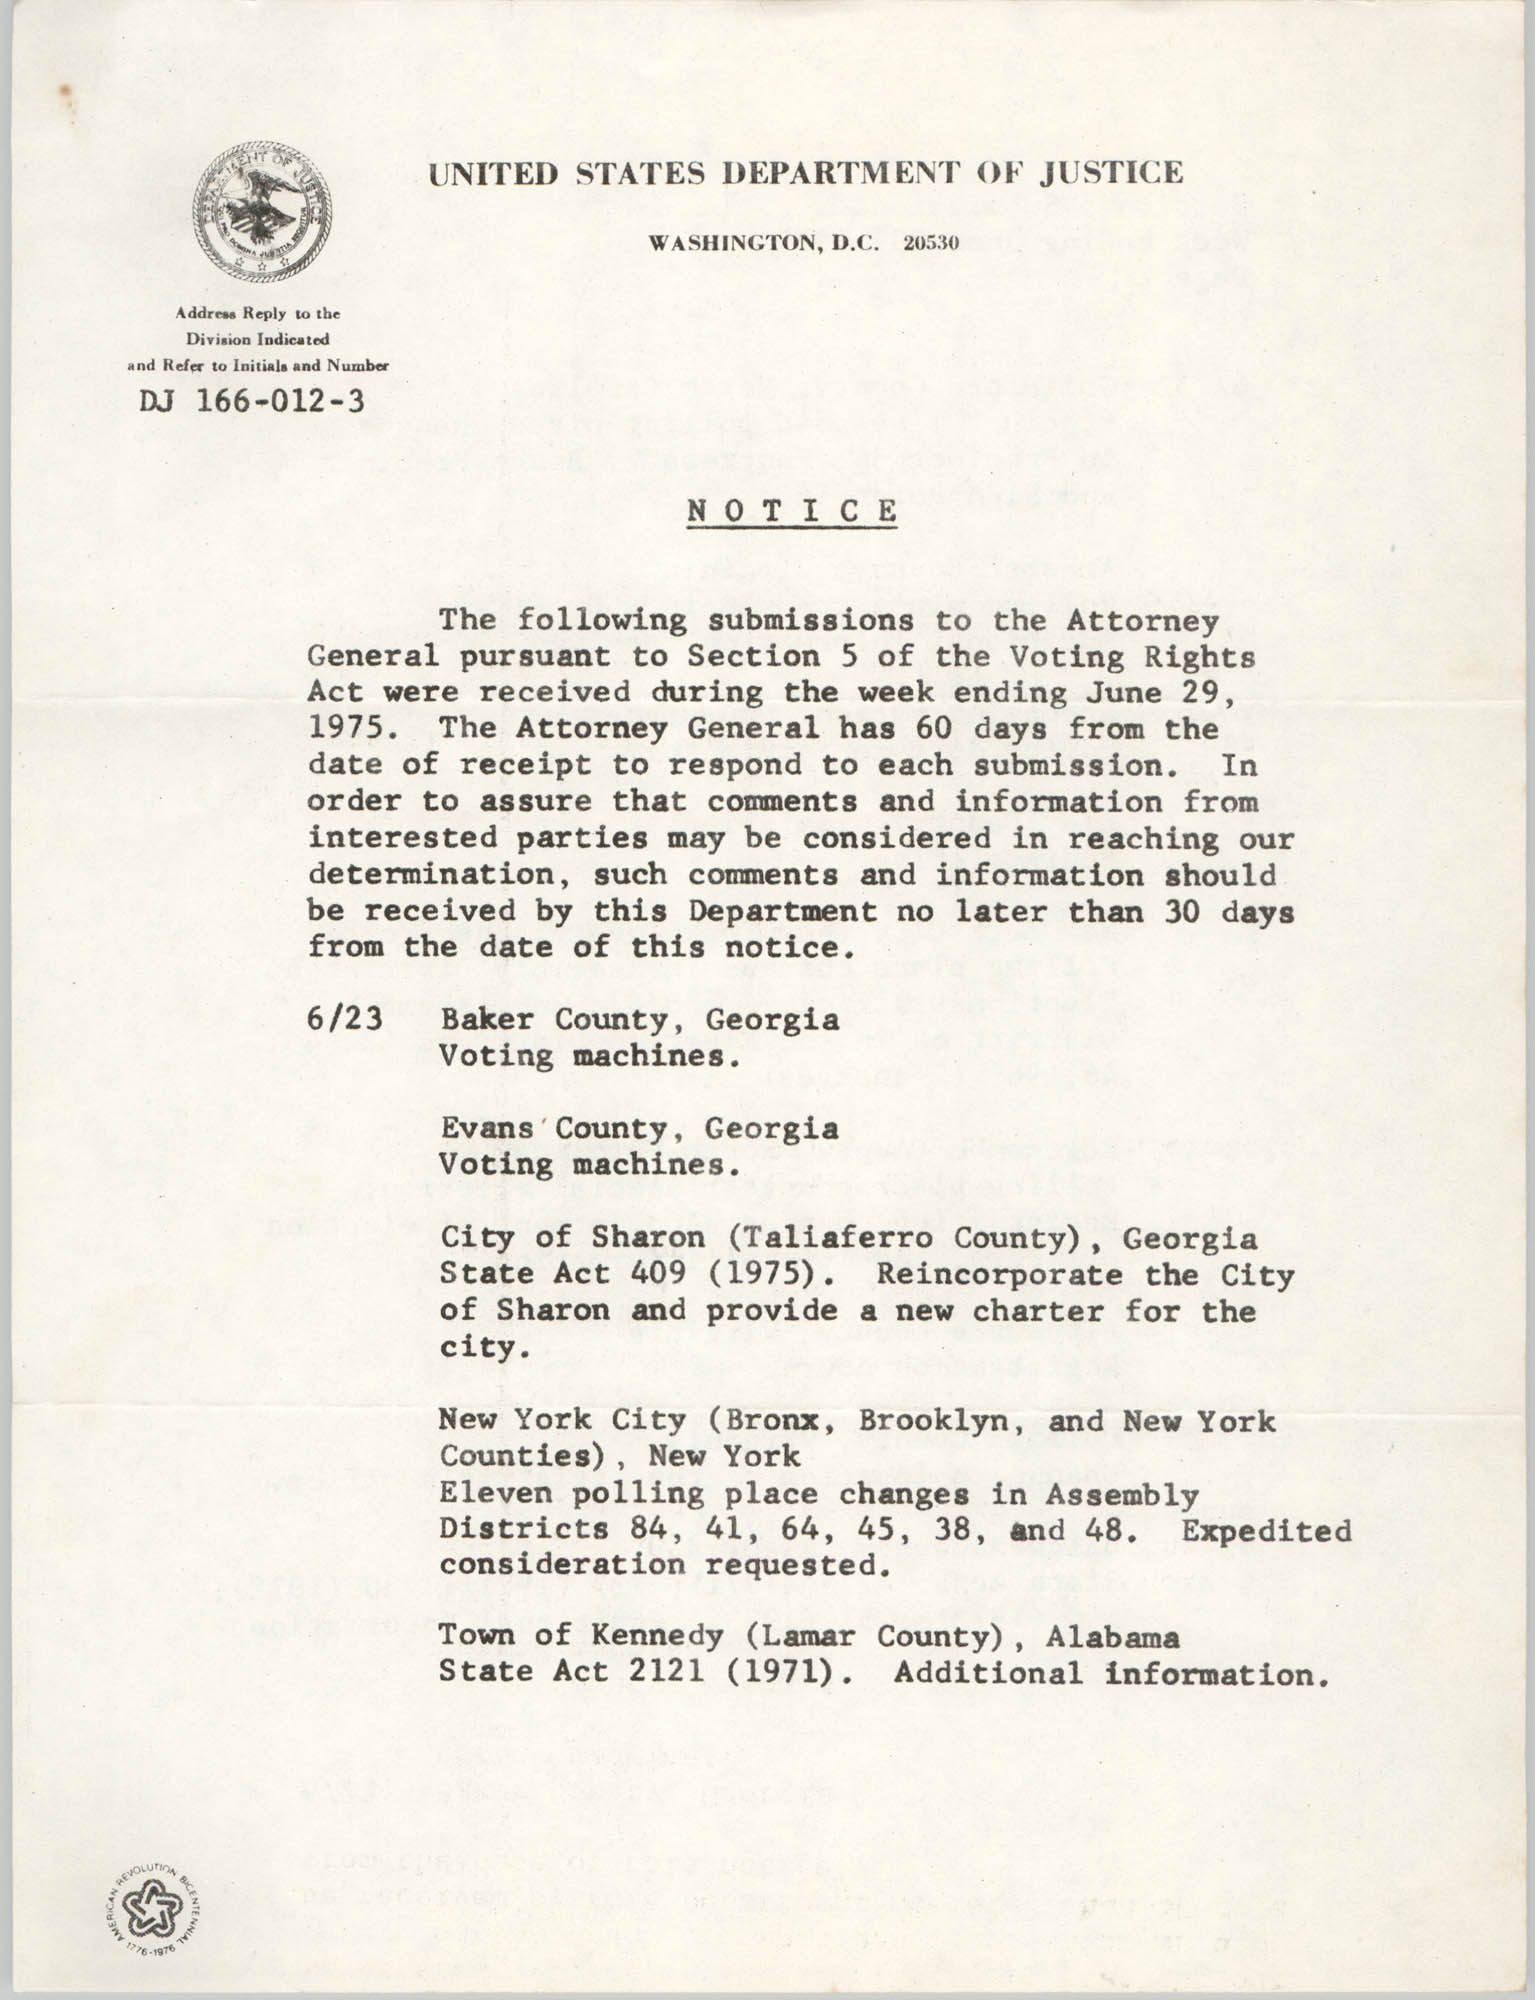 United States Department of Justice Notice, June 1975